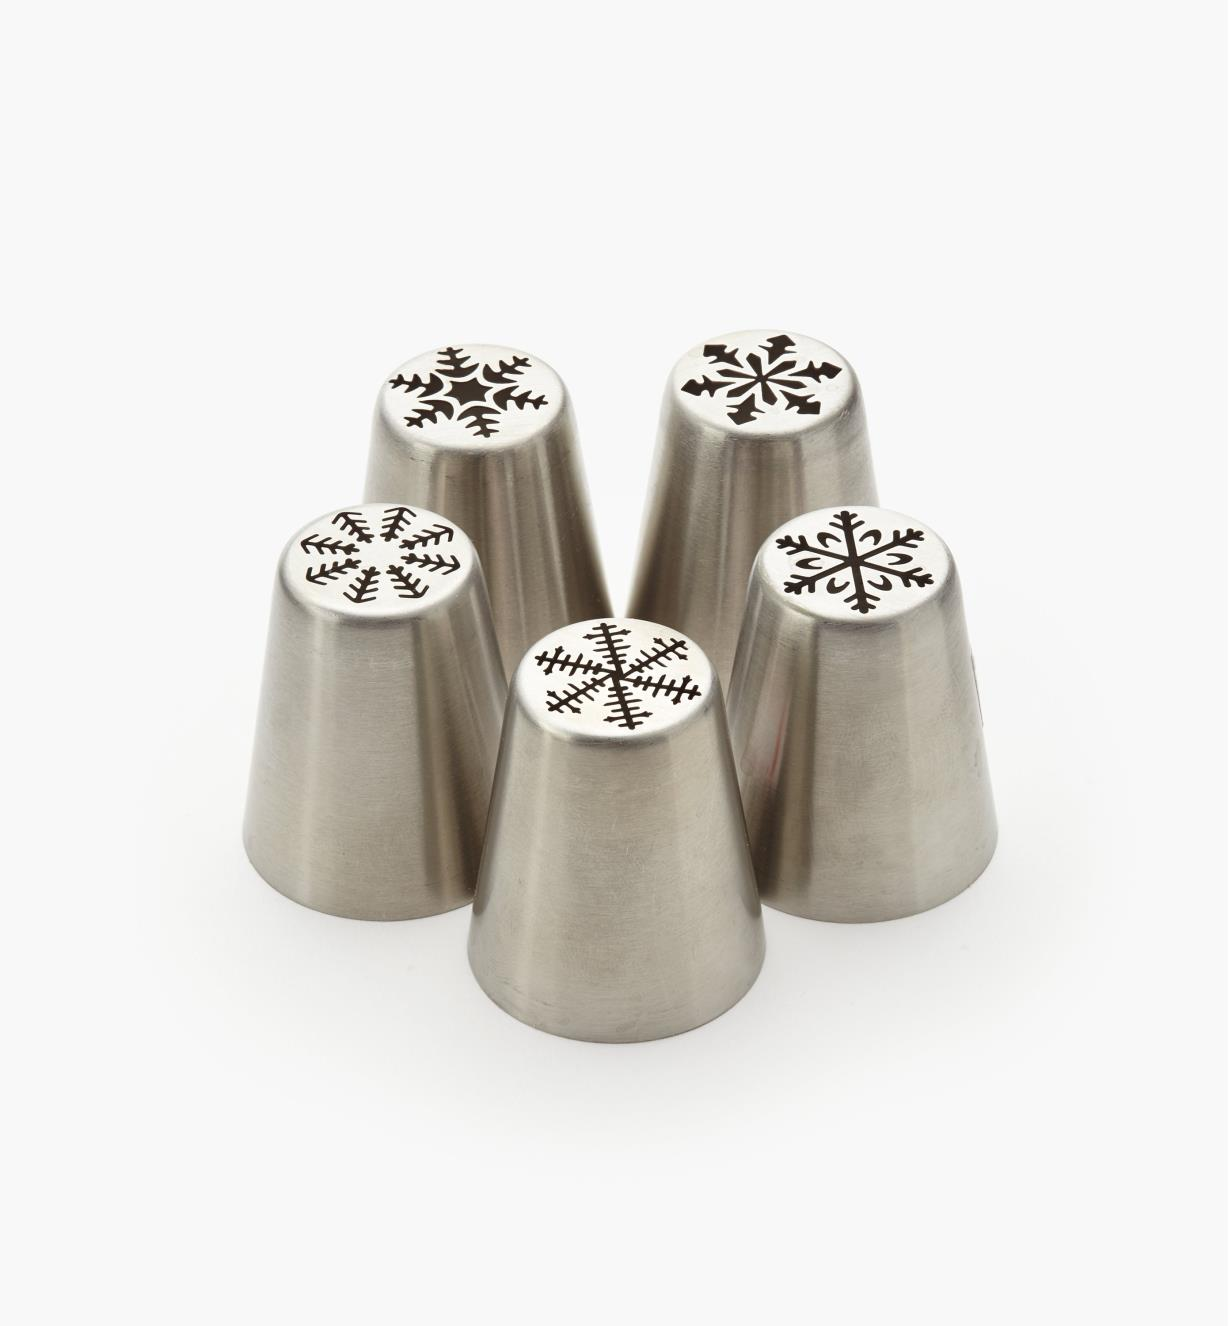 EV713 - Snowflake Piping Tips, set of 5